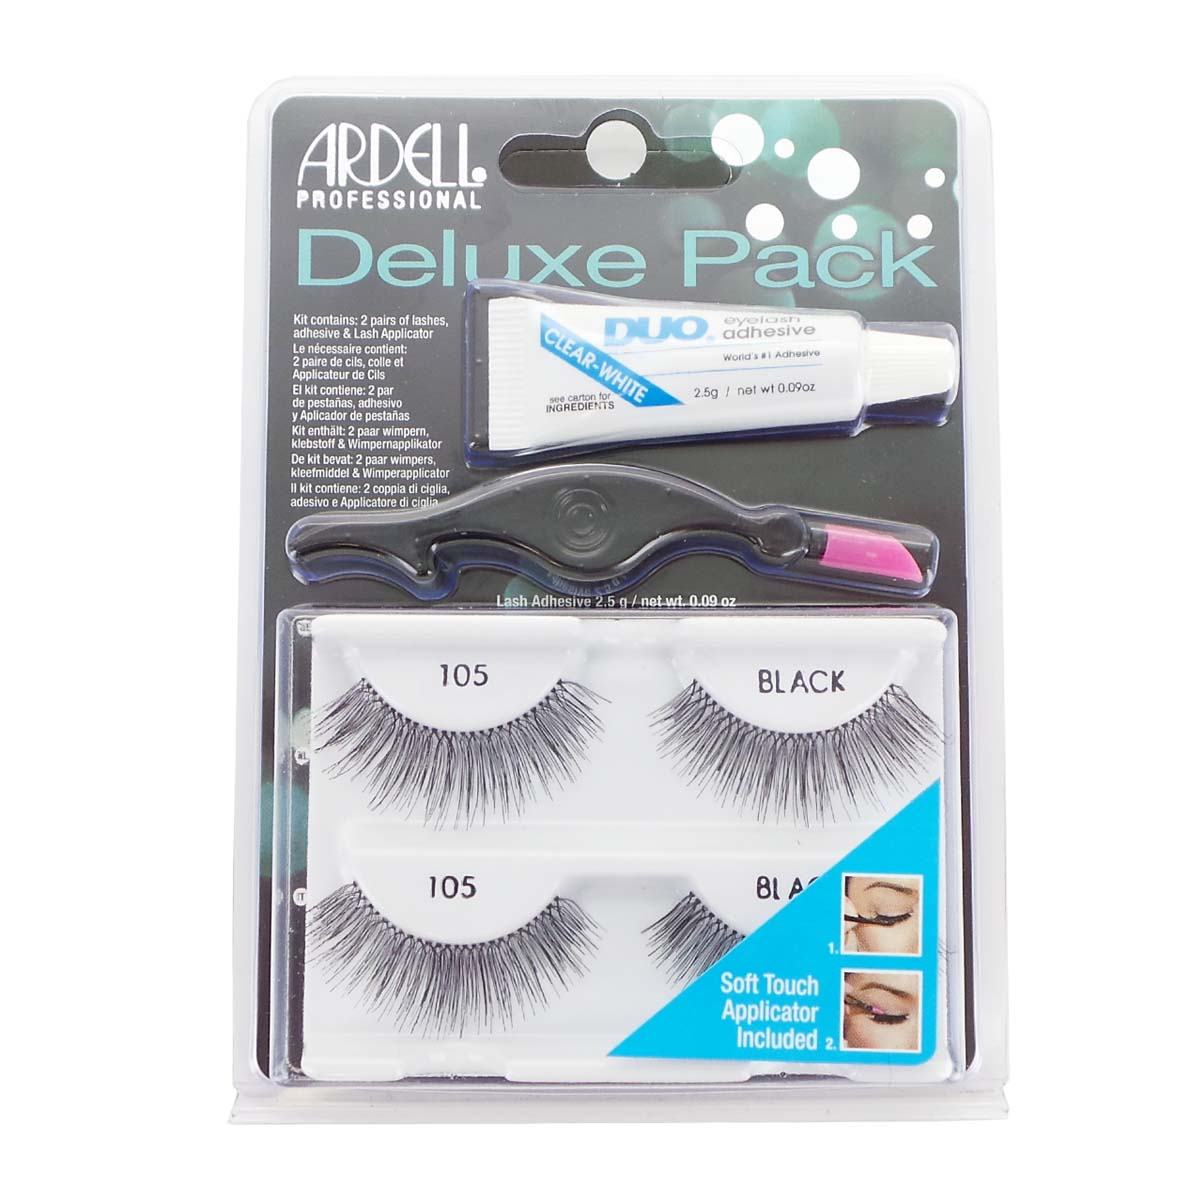 ARDELL 105 Deluxe Pack | HODIVA SHOP